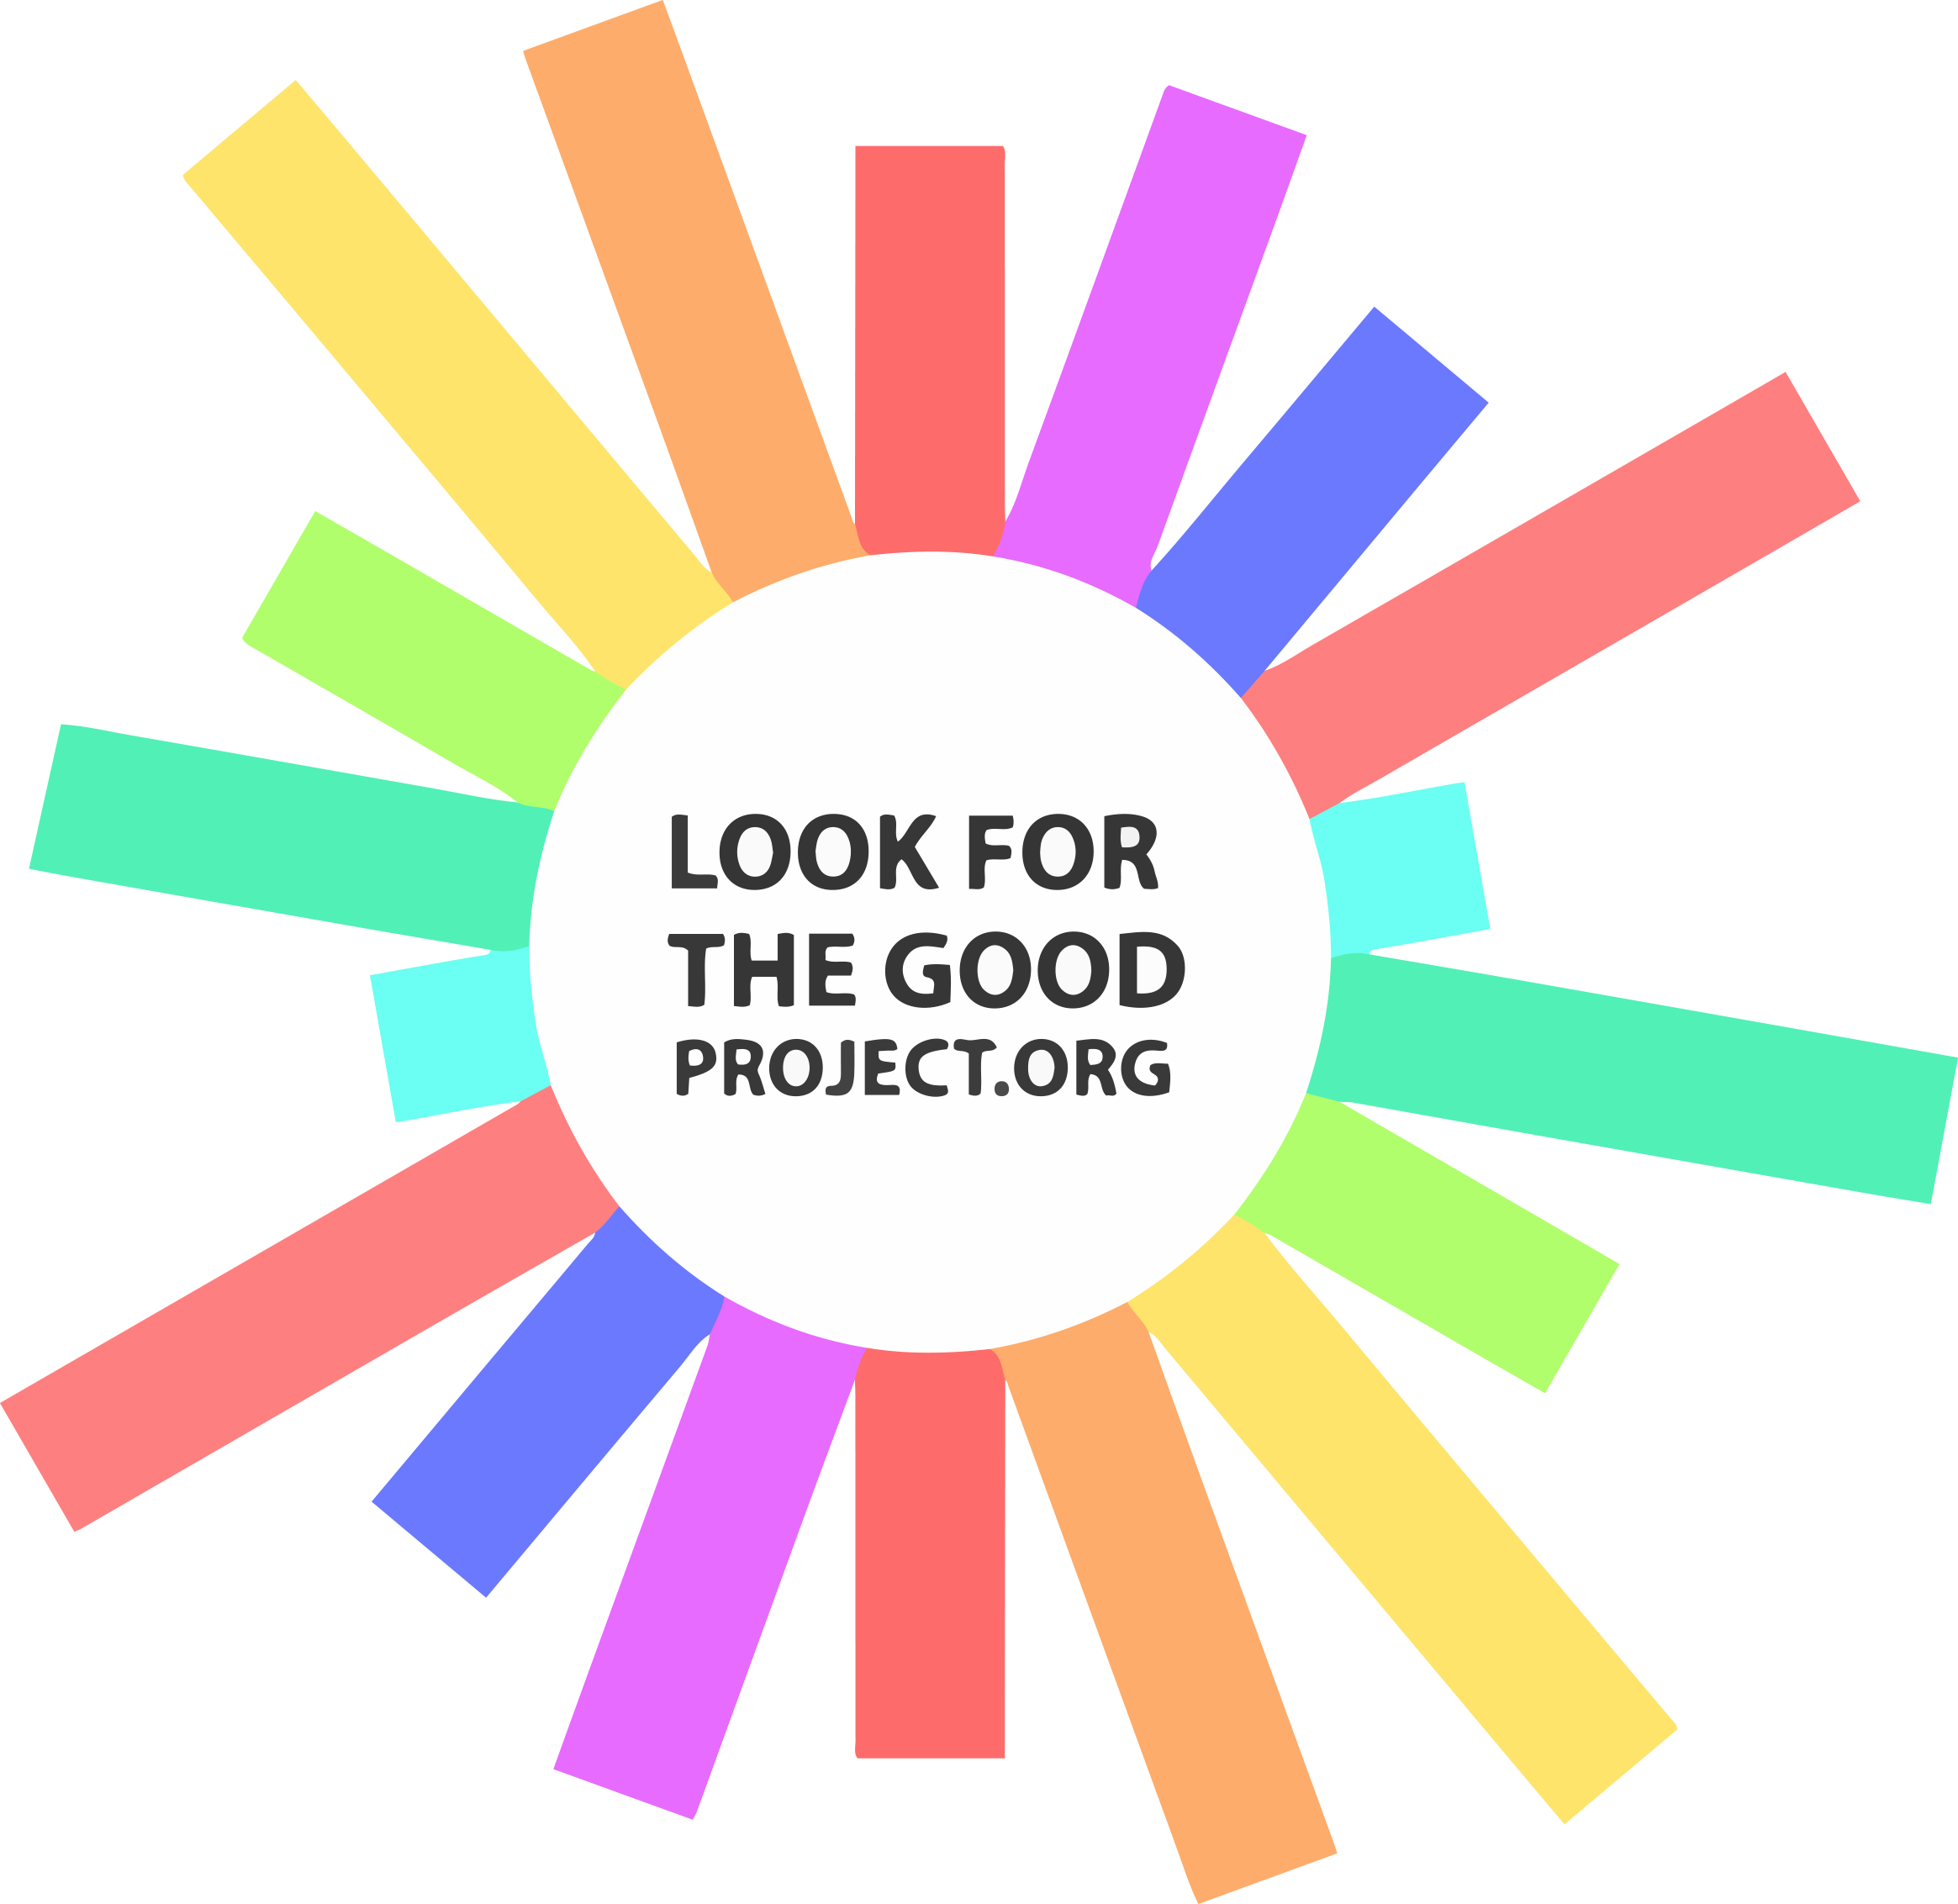 Look For The Good | Look for the Good Project